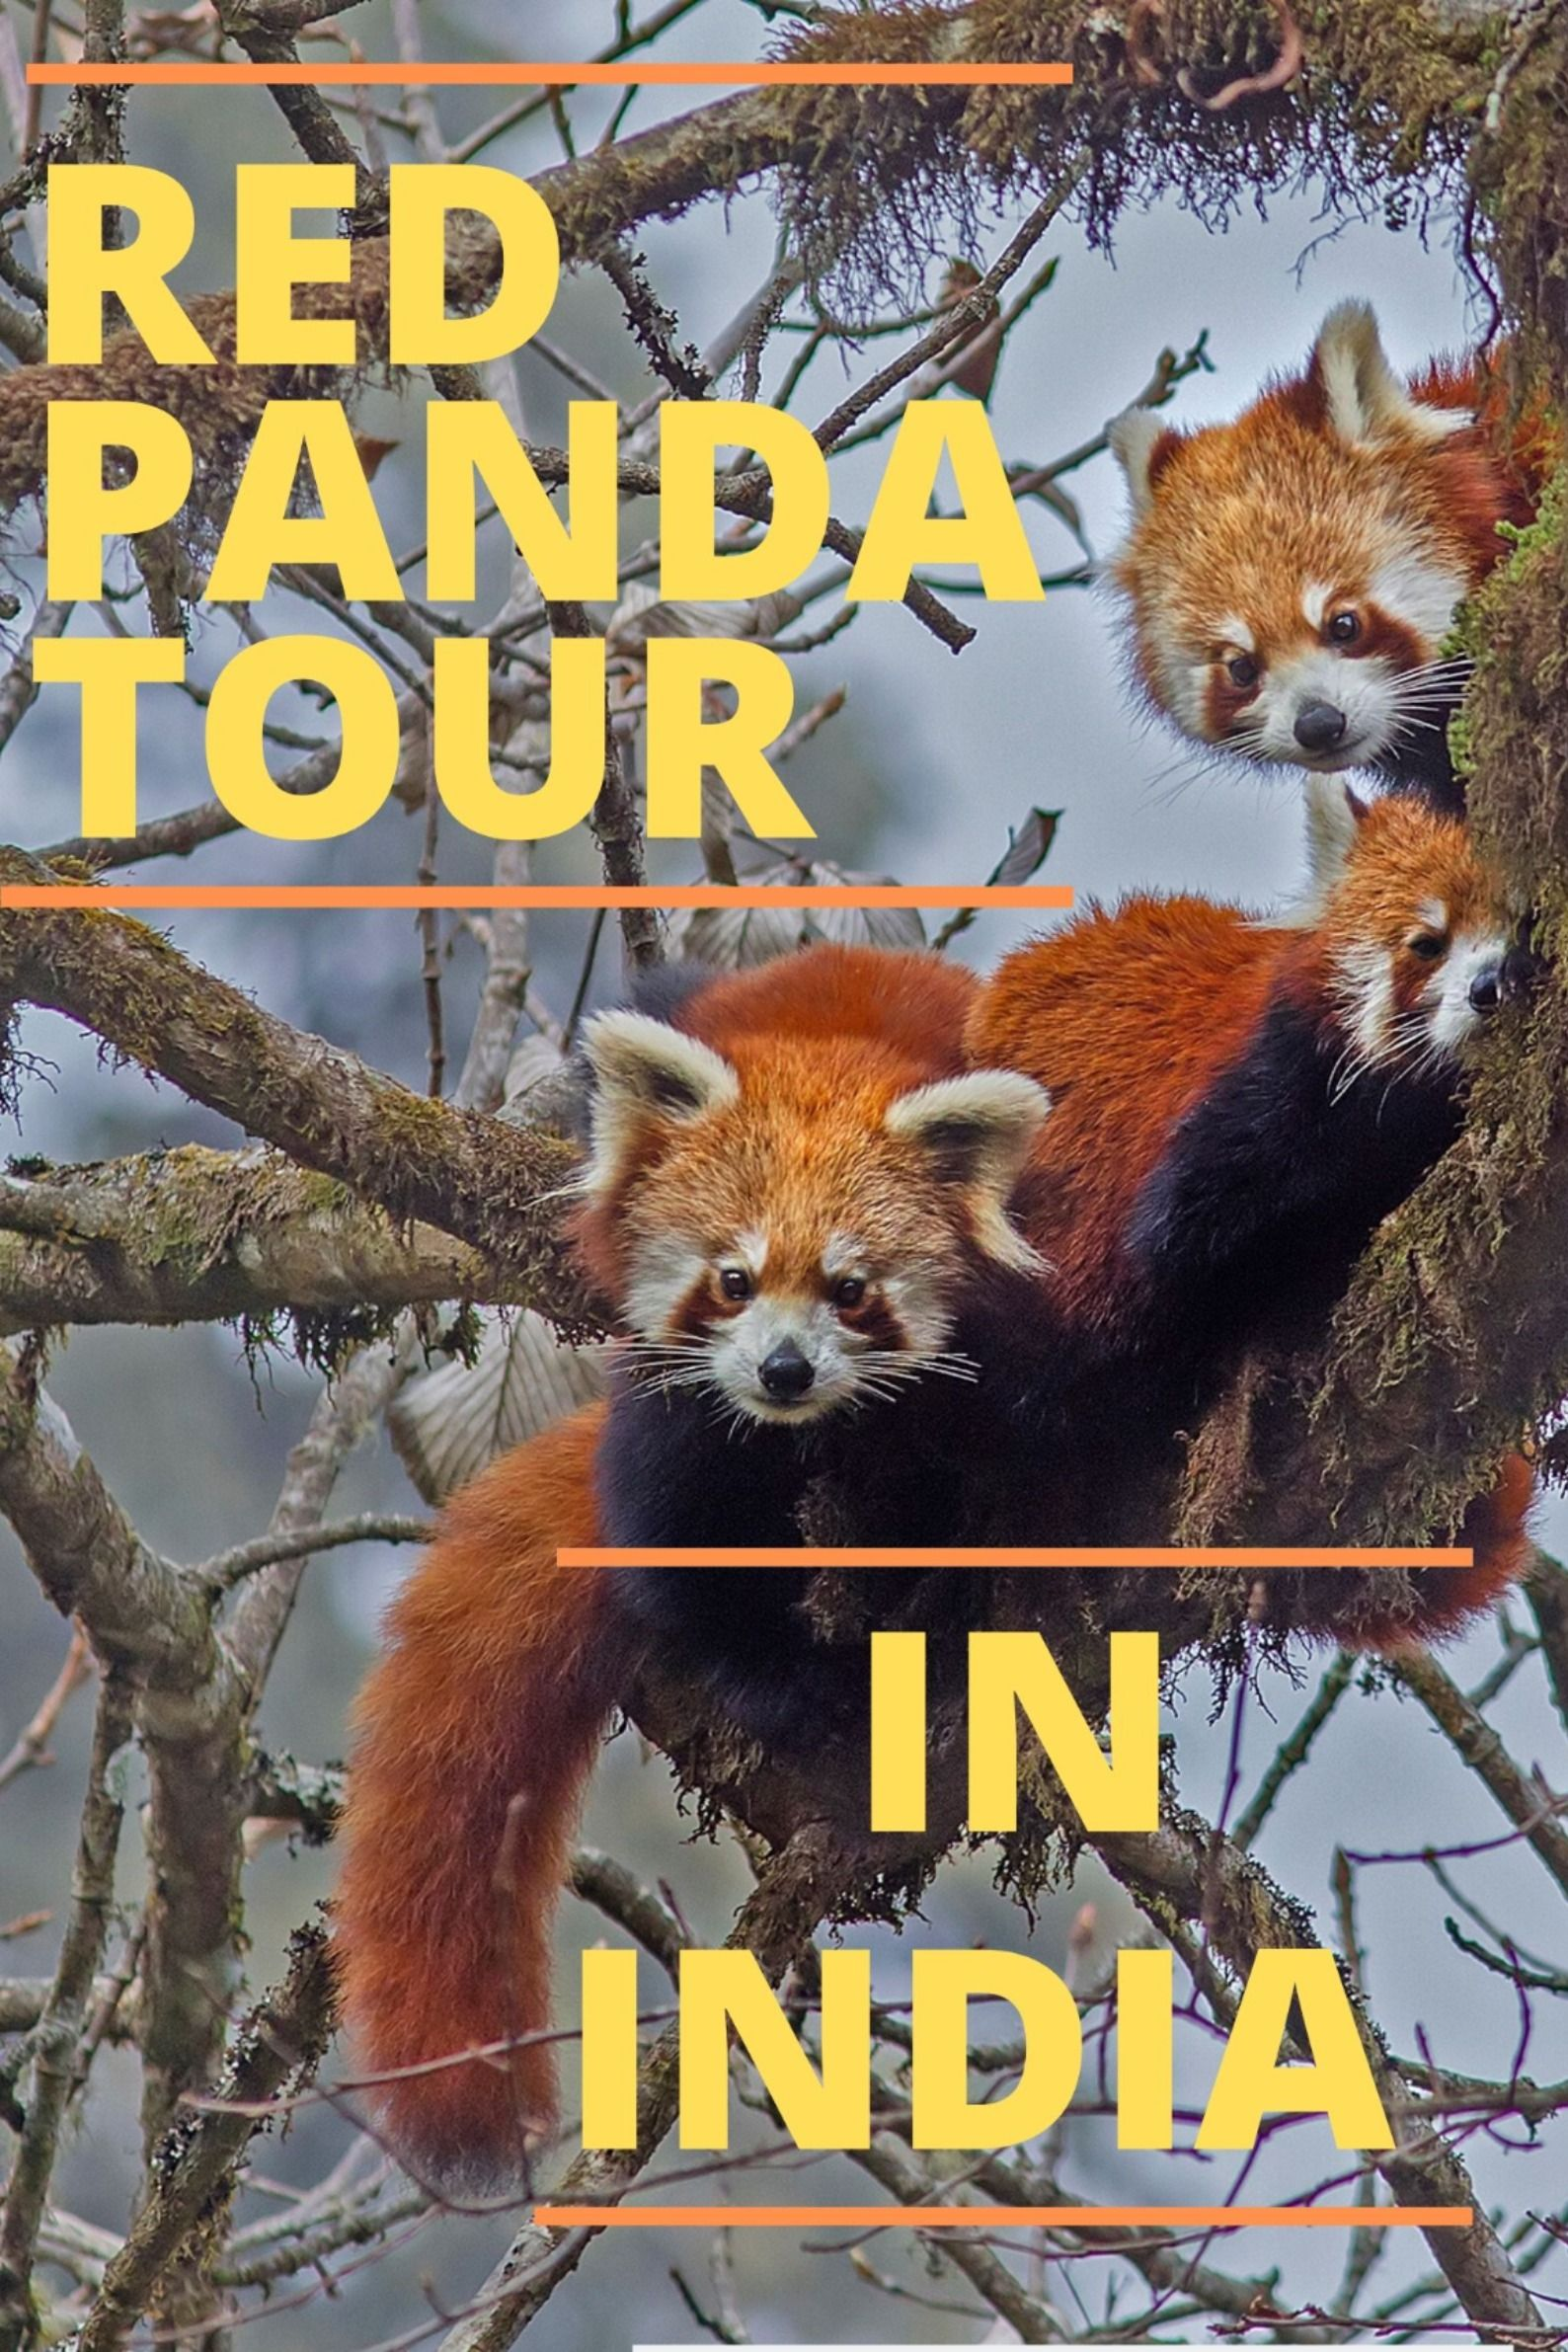 Introducing the Red Panda and Where to find it in India